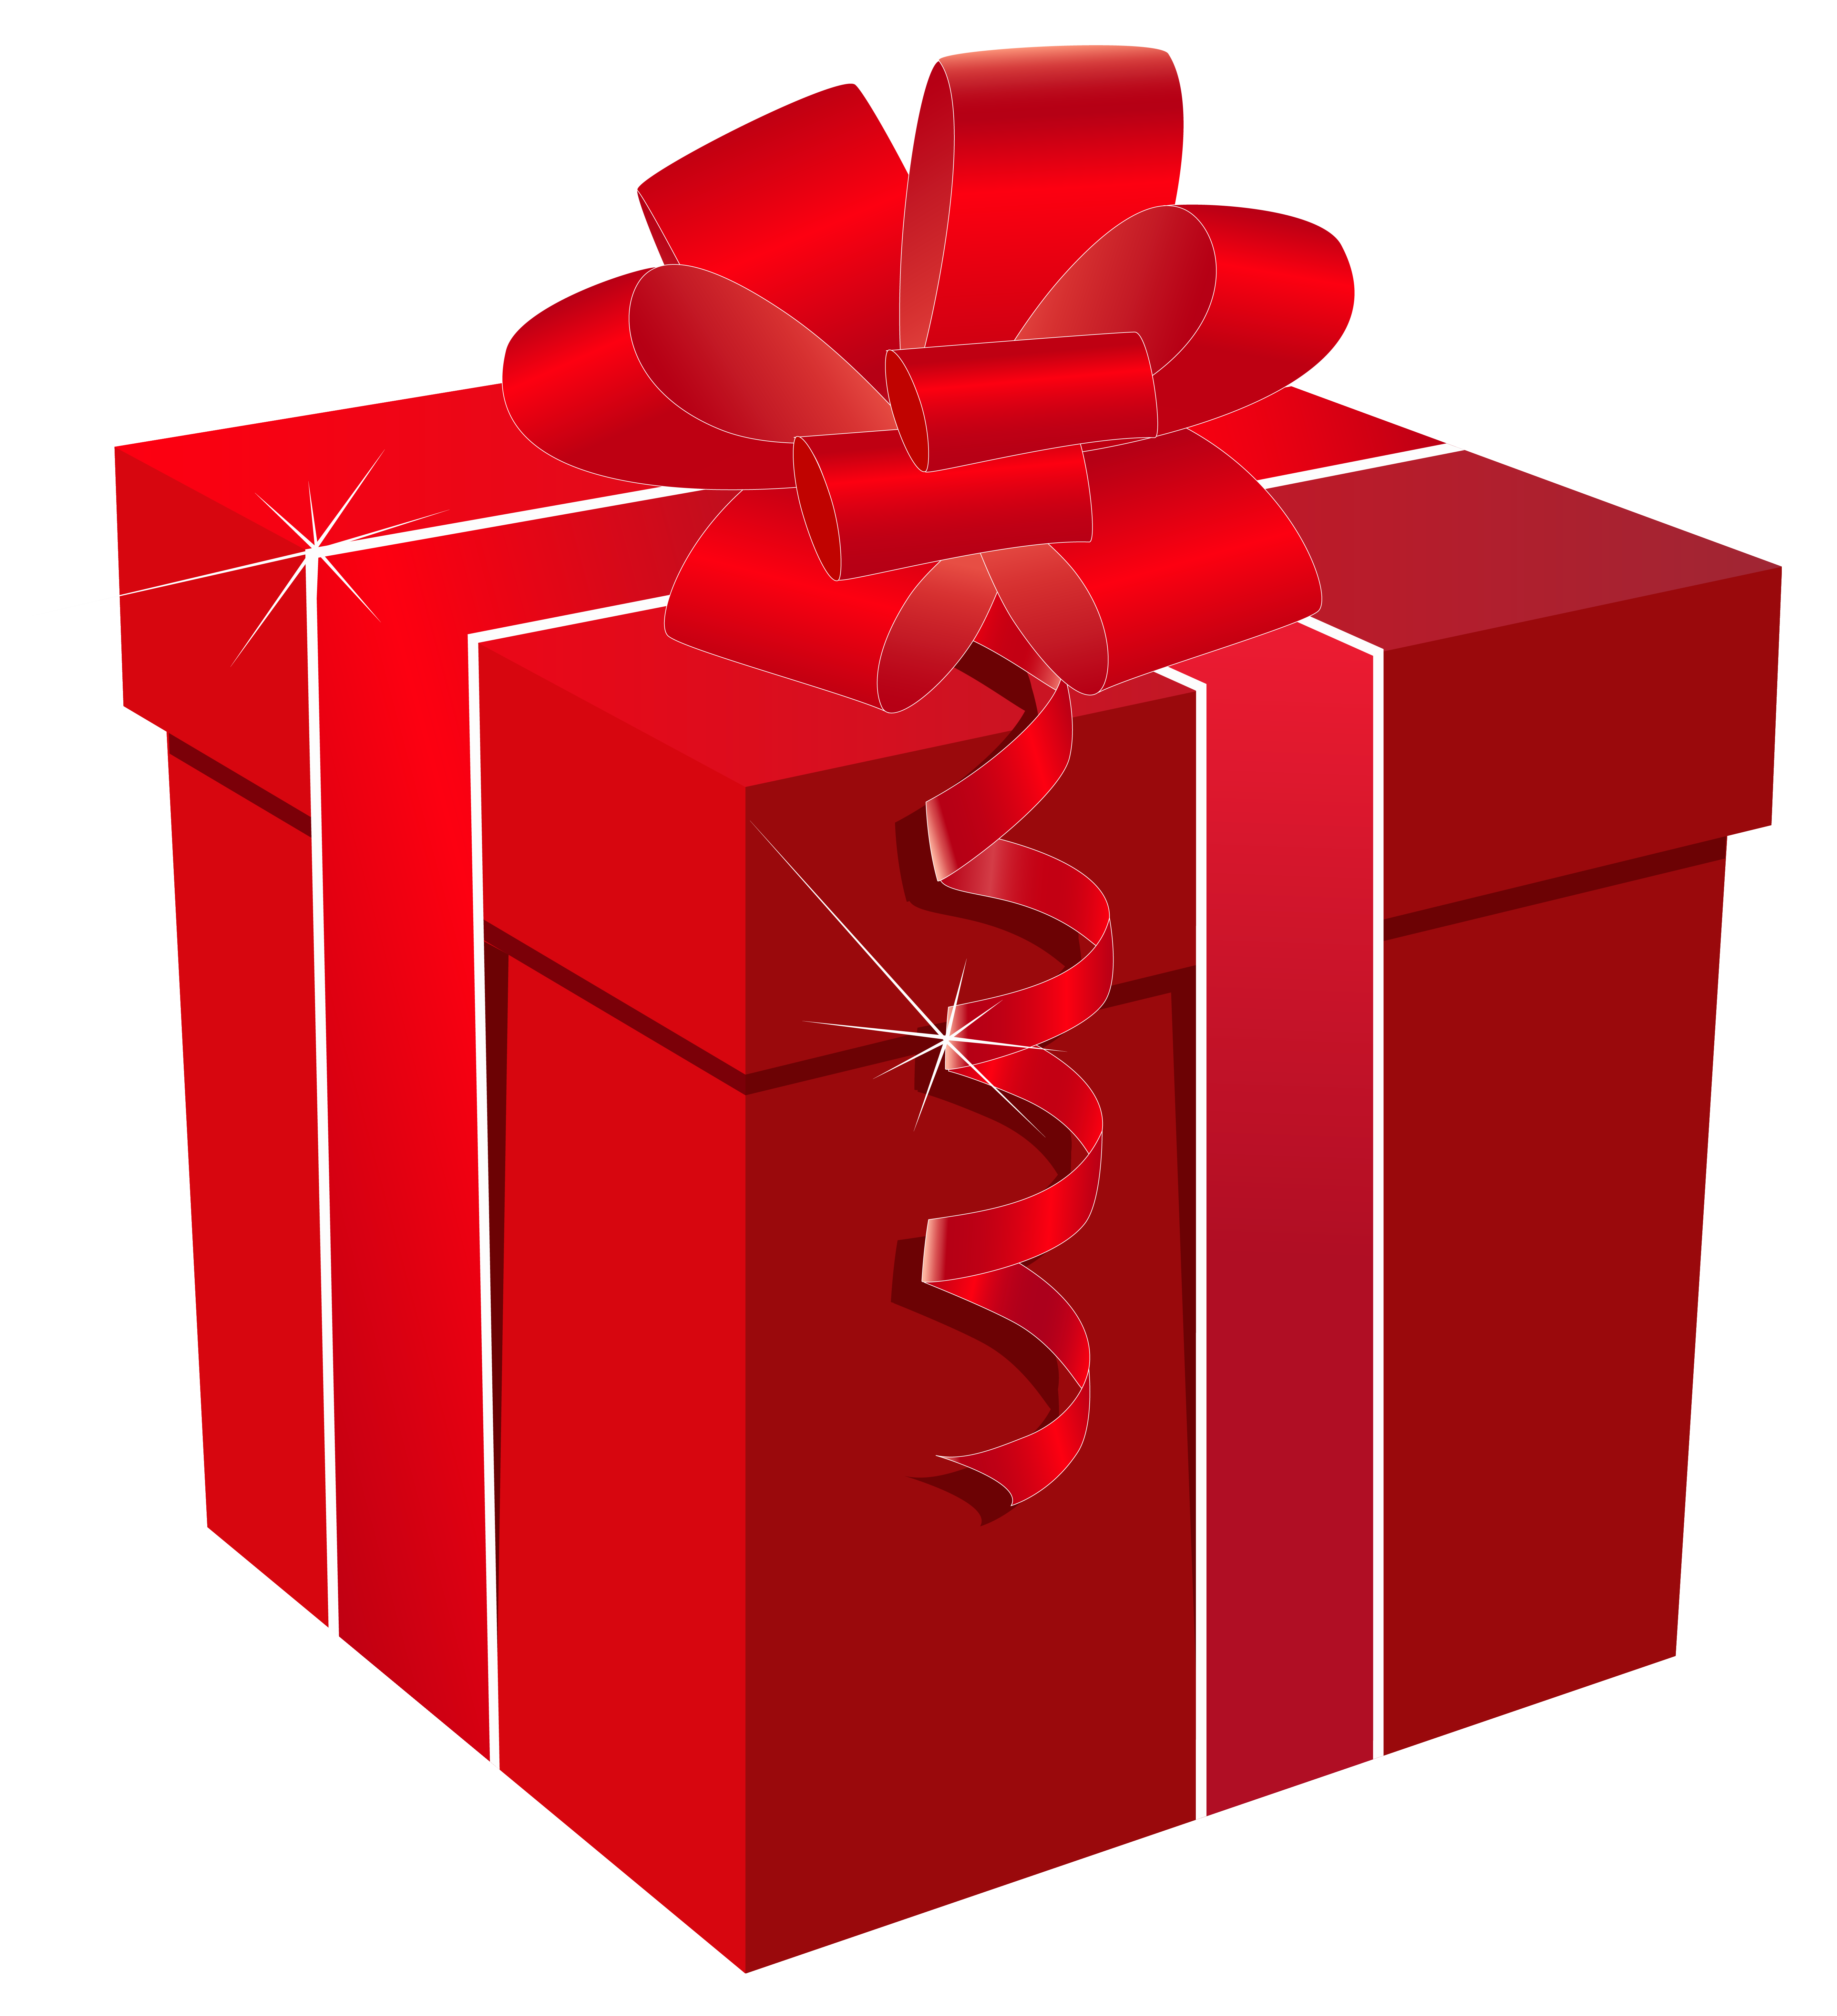 Red gift bow png. Box with clipart image